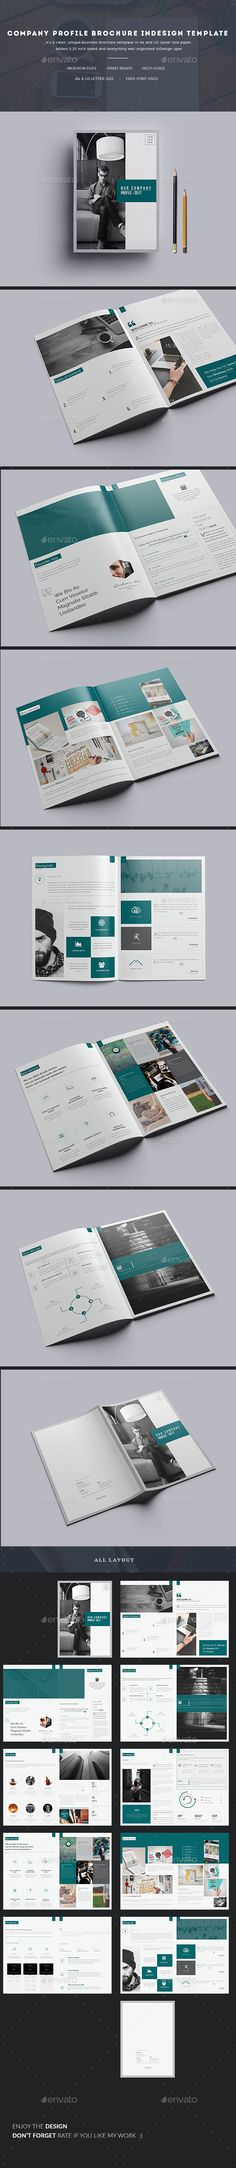 Clean and Professional Company Profile Brochure Template InDesign - company profile templates